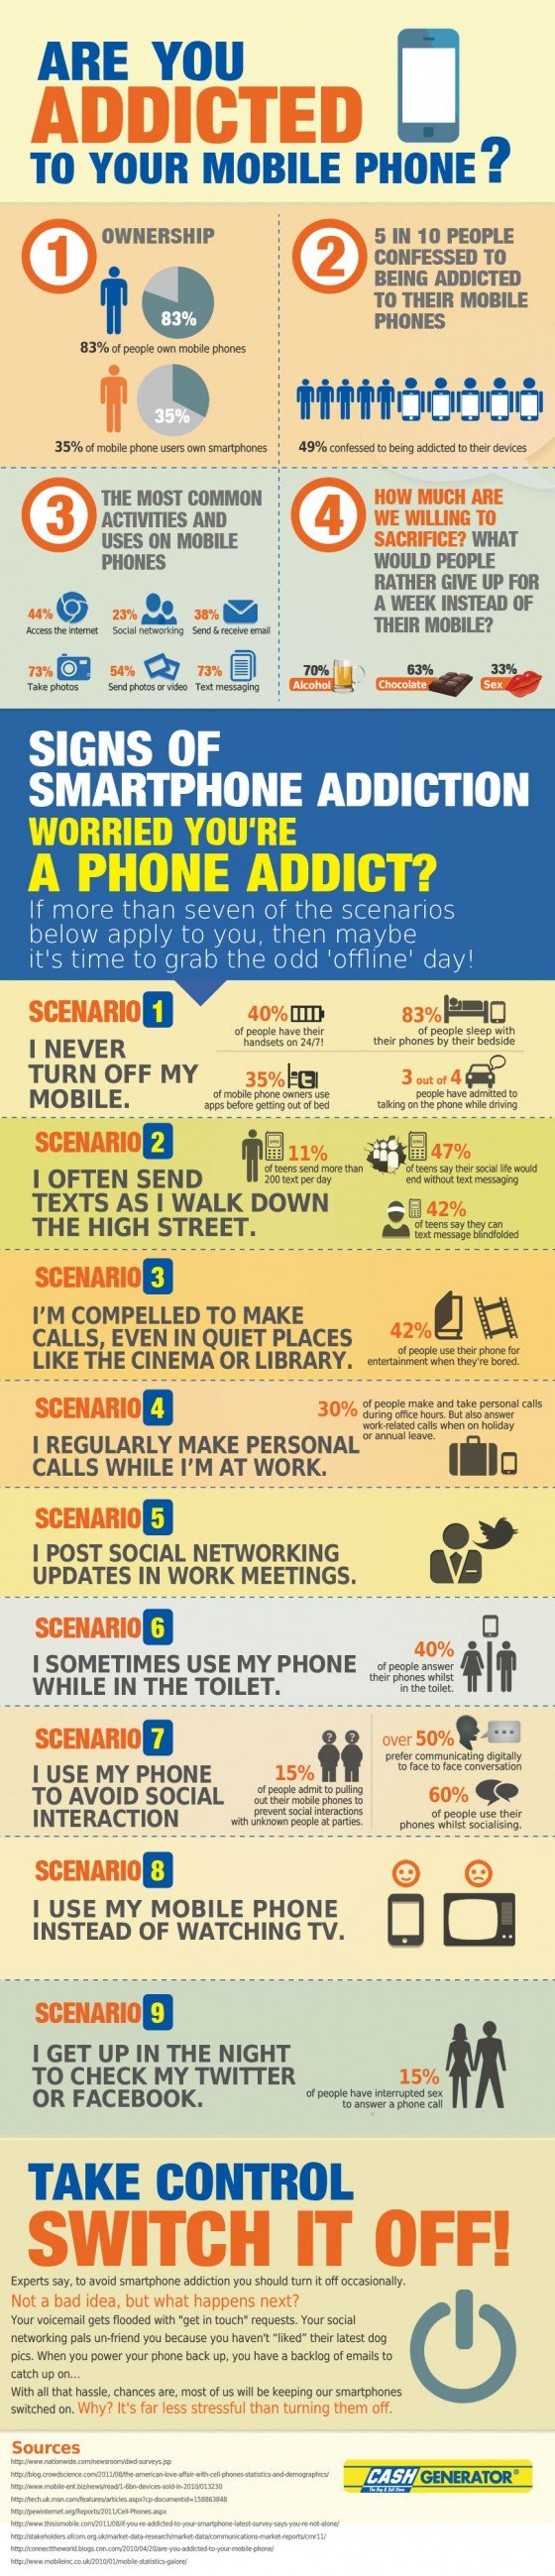 Are You Phone Addicted? Check Here